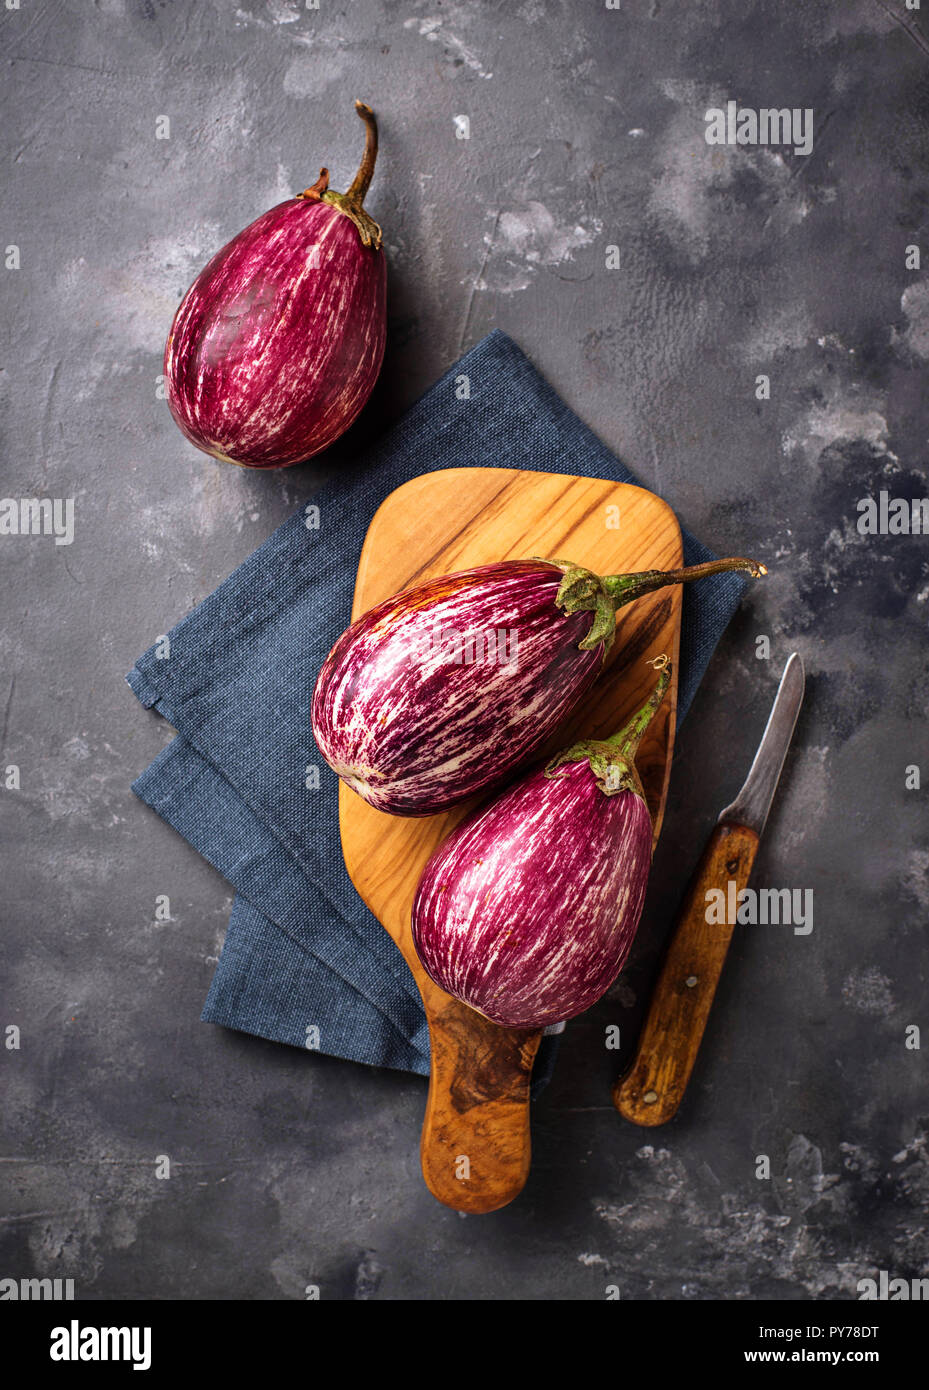 Fresh striped purple aubergines on grey background - Stock Image